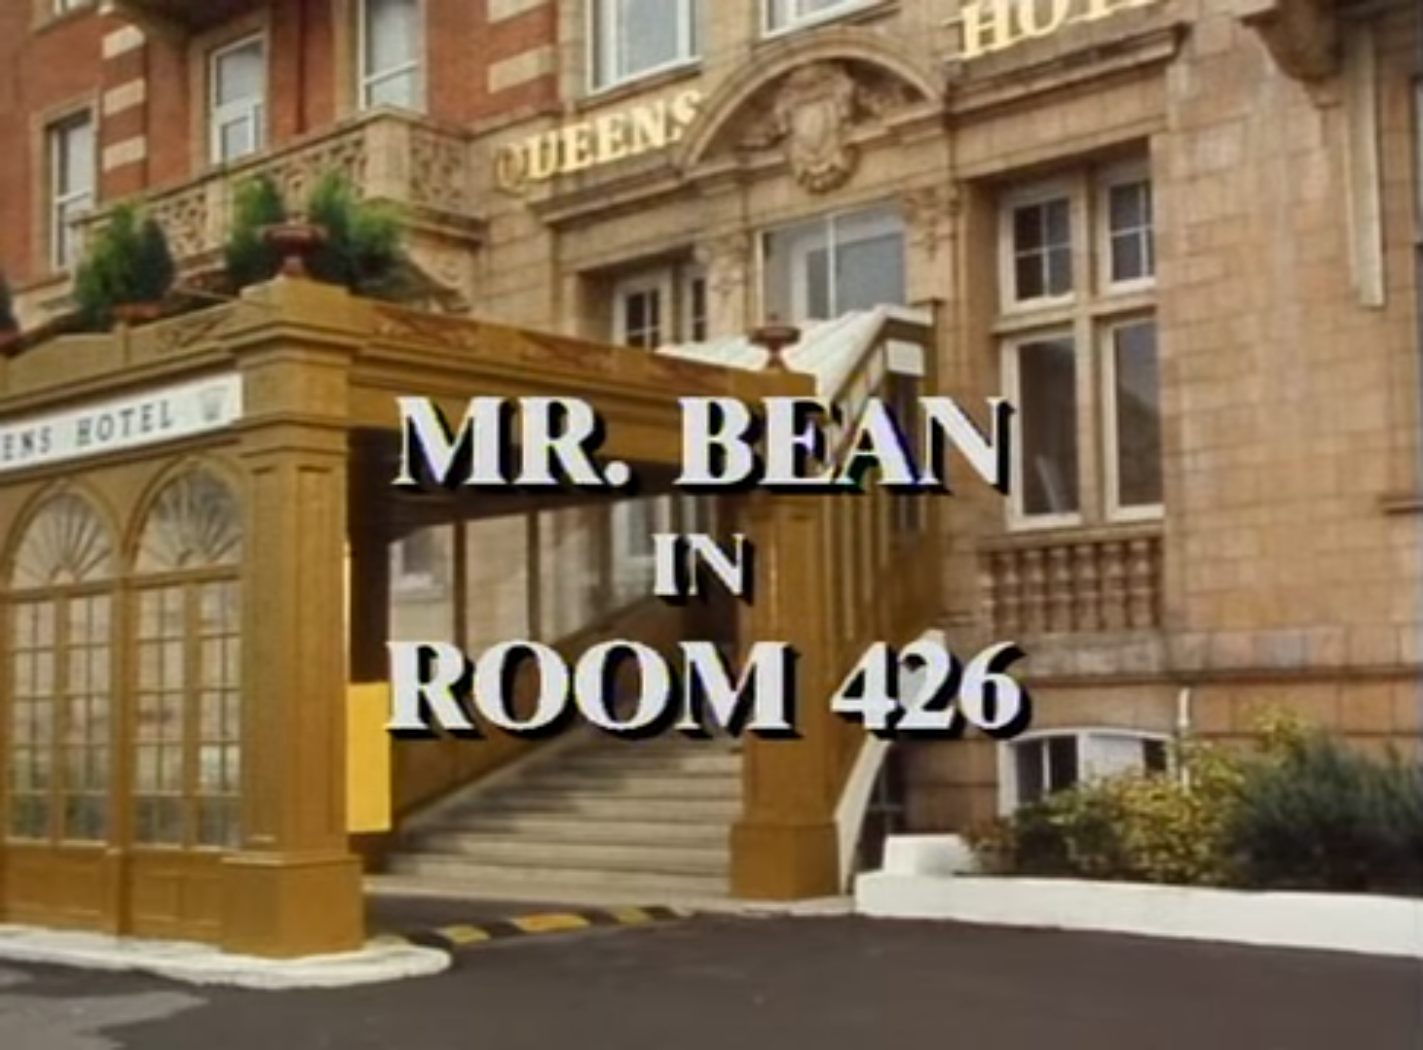 Mr bean in room 426 mr bean wiki fandom powered by wikia mr bean in room 426 solutioingenieria Choice Image